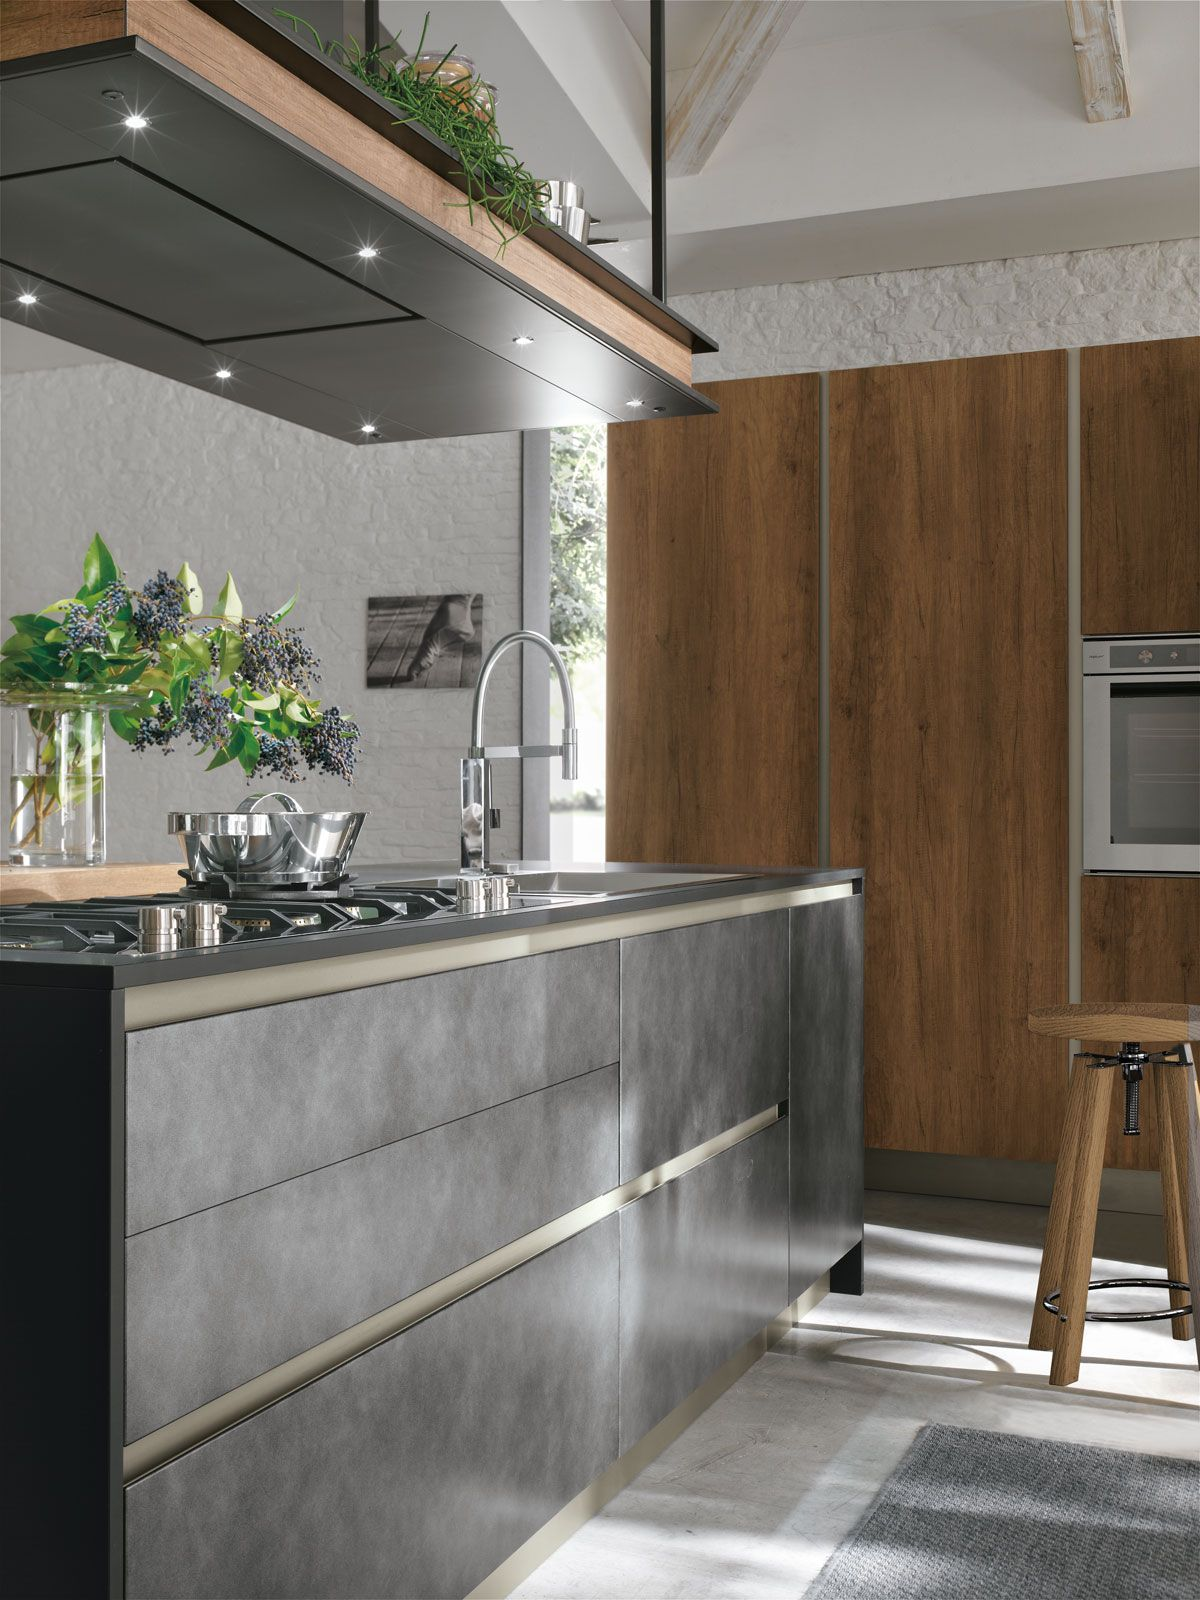 Stosa kitchens allow you to choose a coordinated furniture and ...